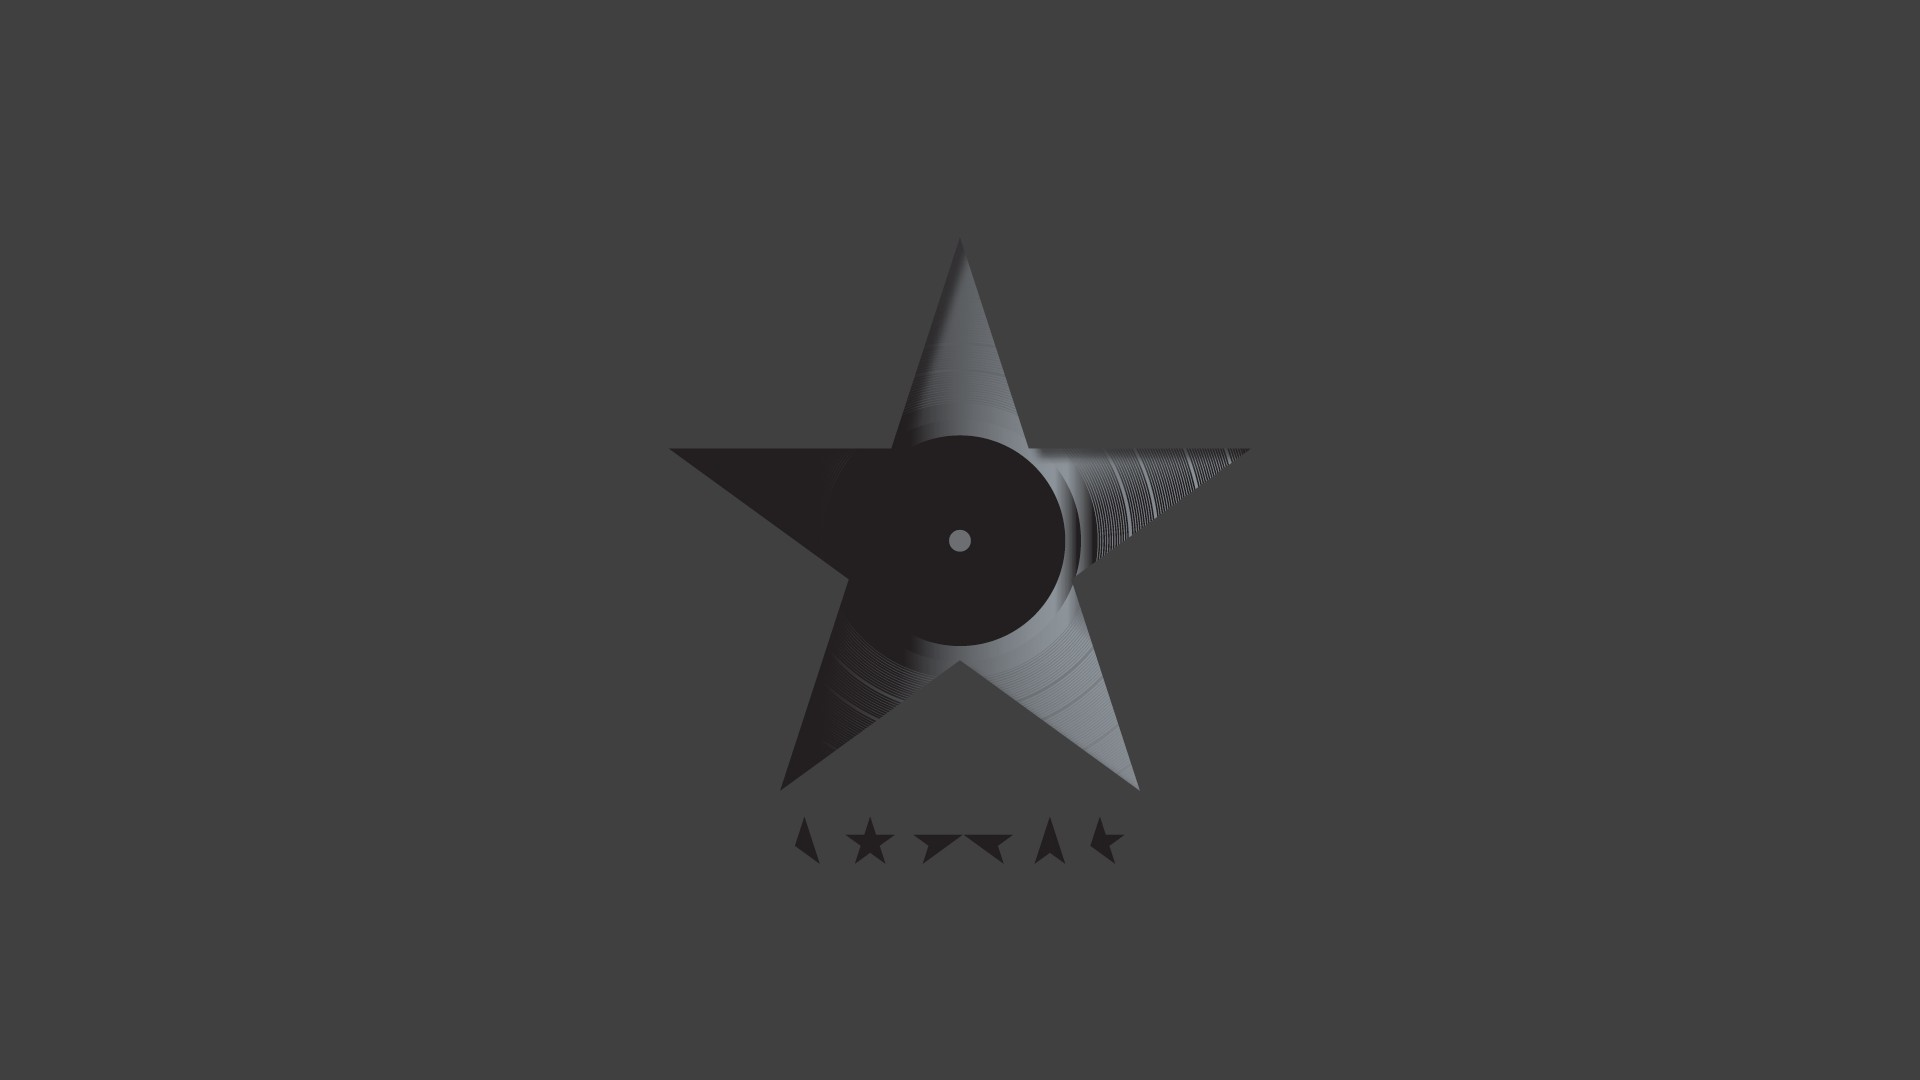 Res: 1920x1080, David Bowie, ☆, Black Star Wallpapers HD / Desktop and Mobile Backgrounds